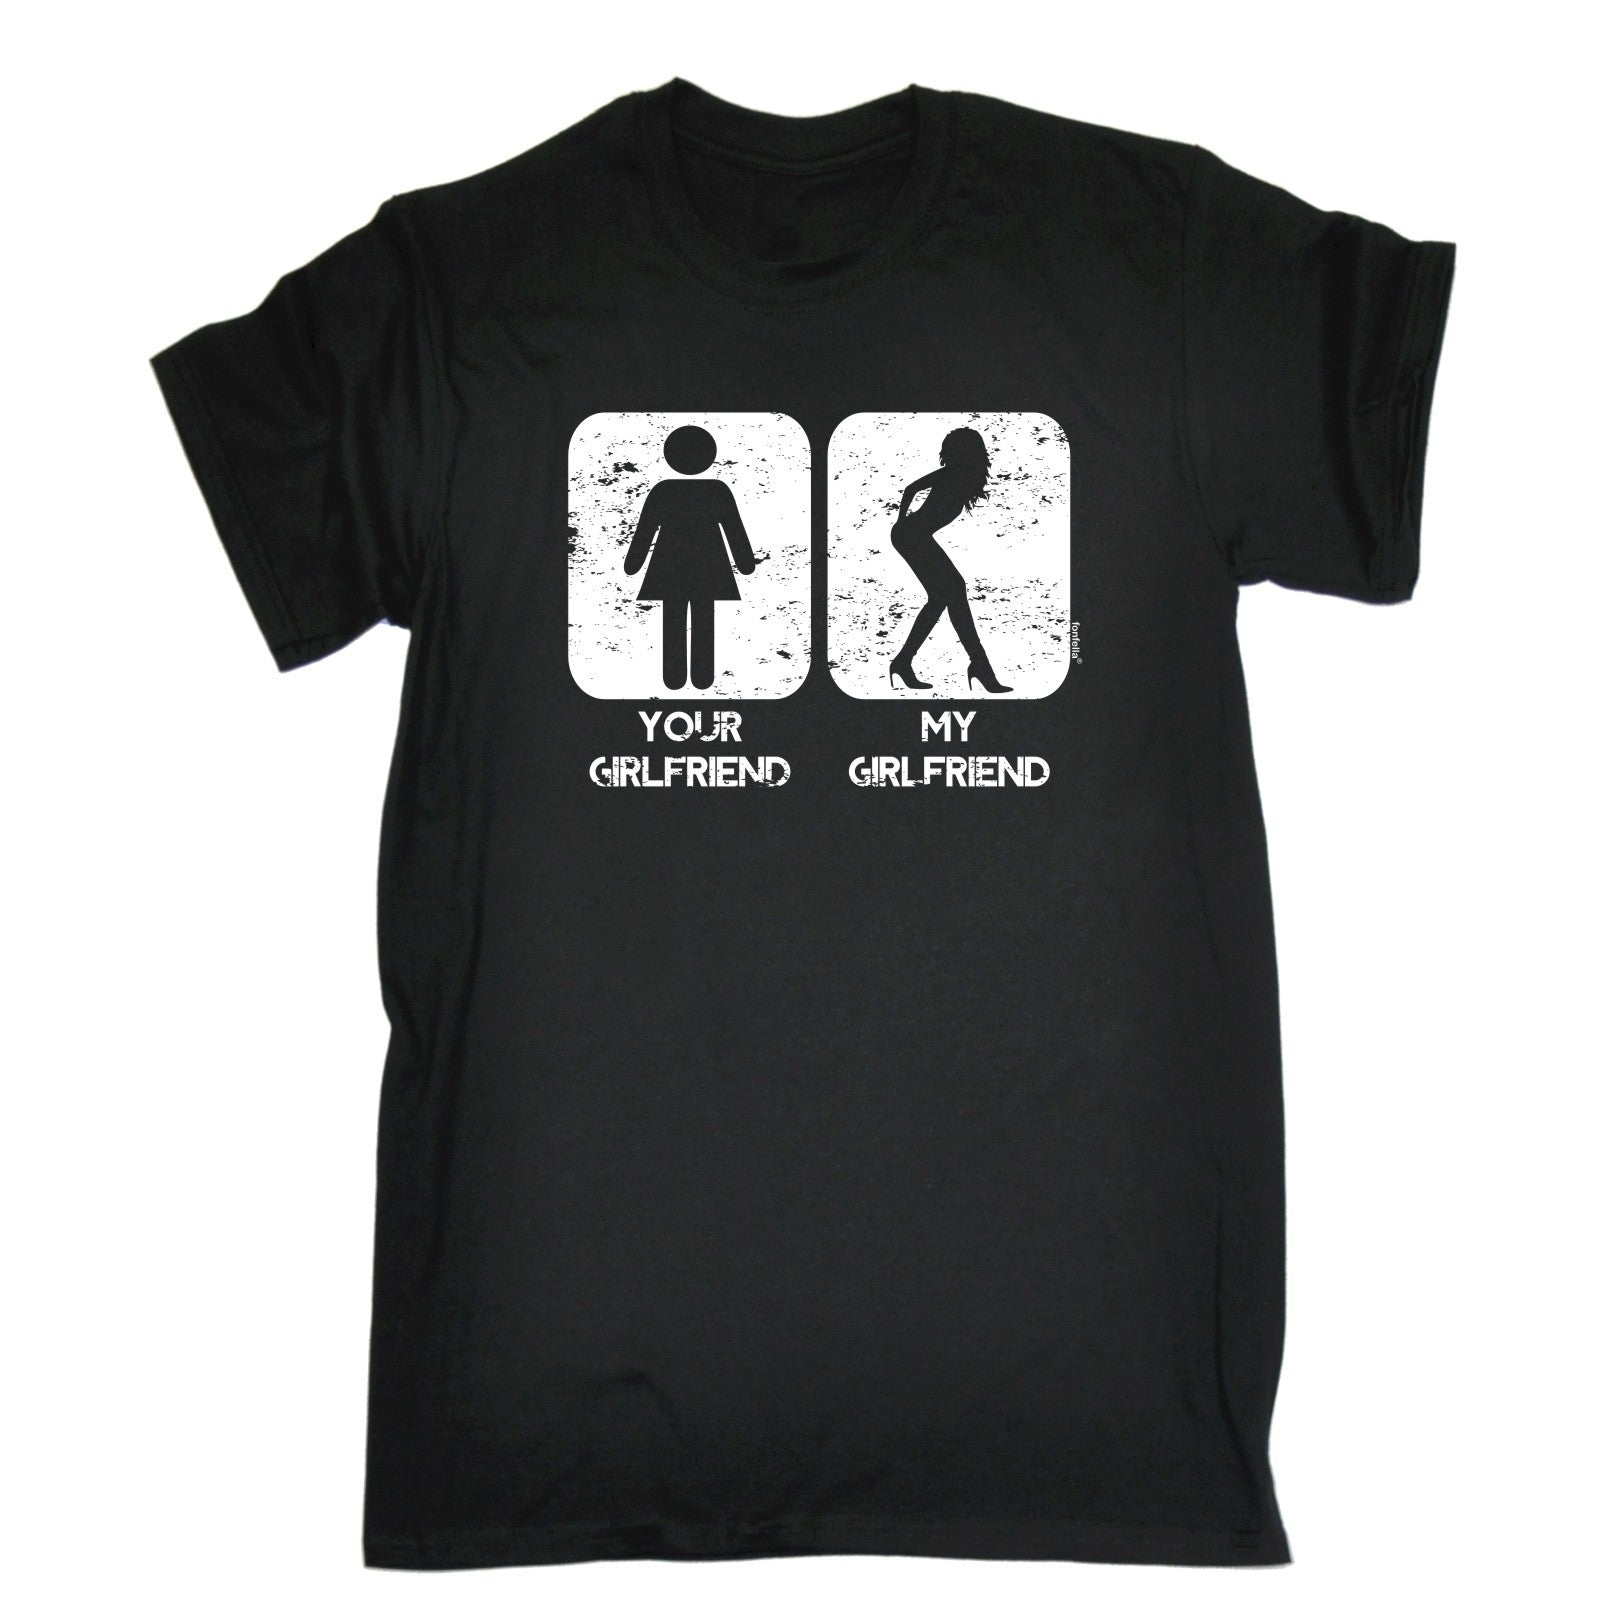 YOUR GIRLFRIEND MY T SHIRT Tee Partner